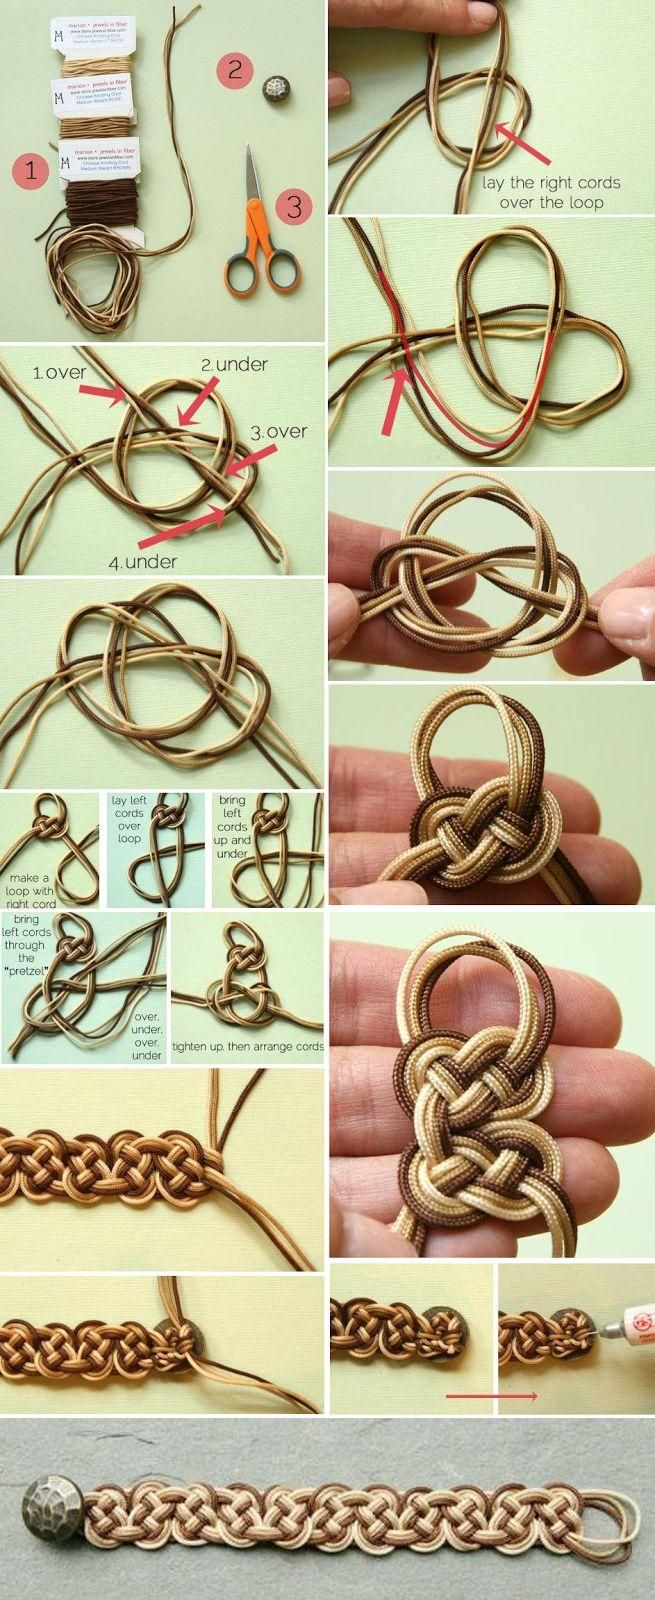 DIY Jewelry DIY Nautical Rope : DIY Ombre celtic knot bracelet - love this although I doubt I could make it